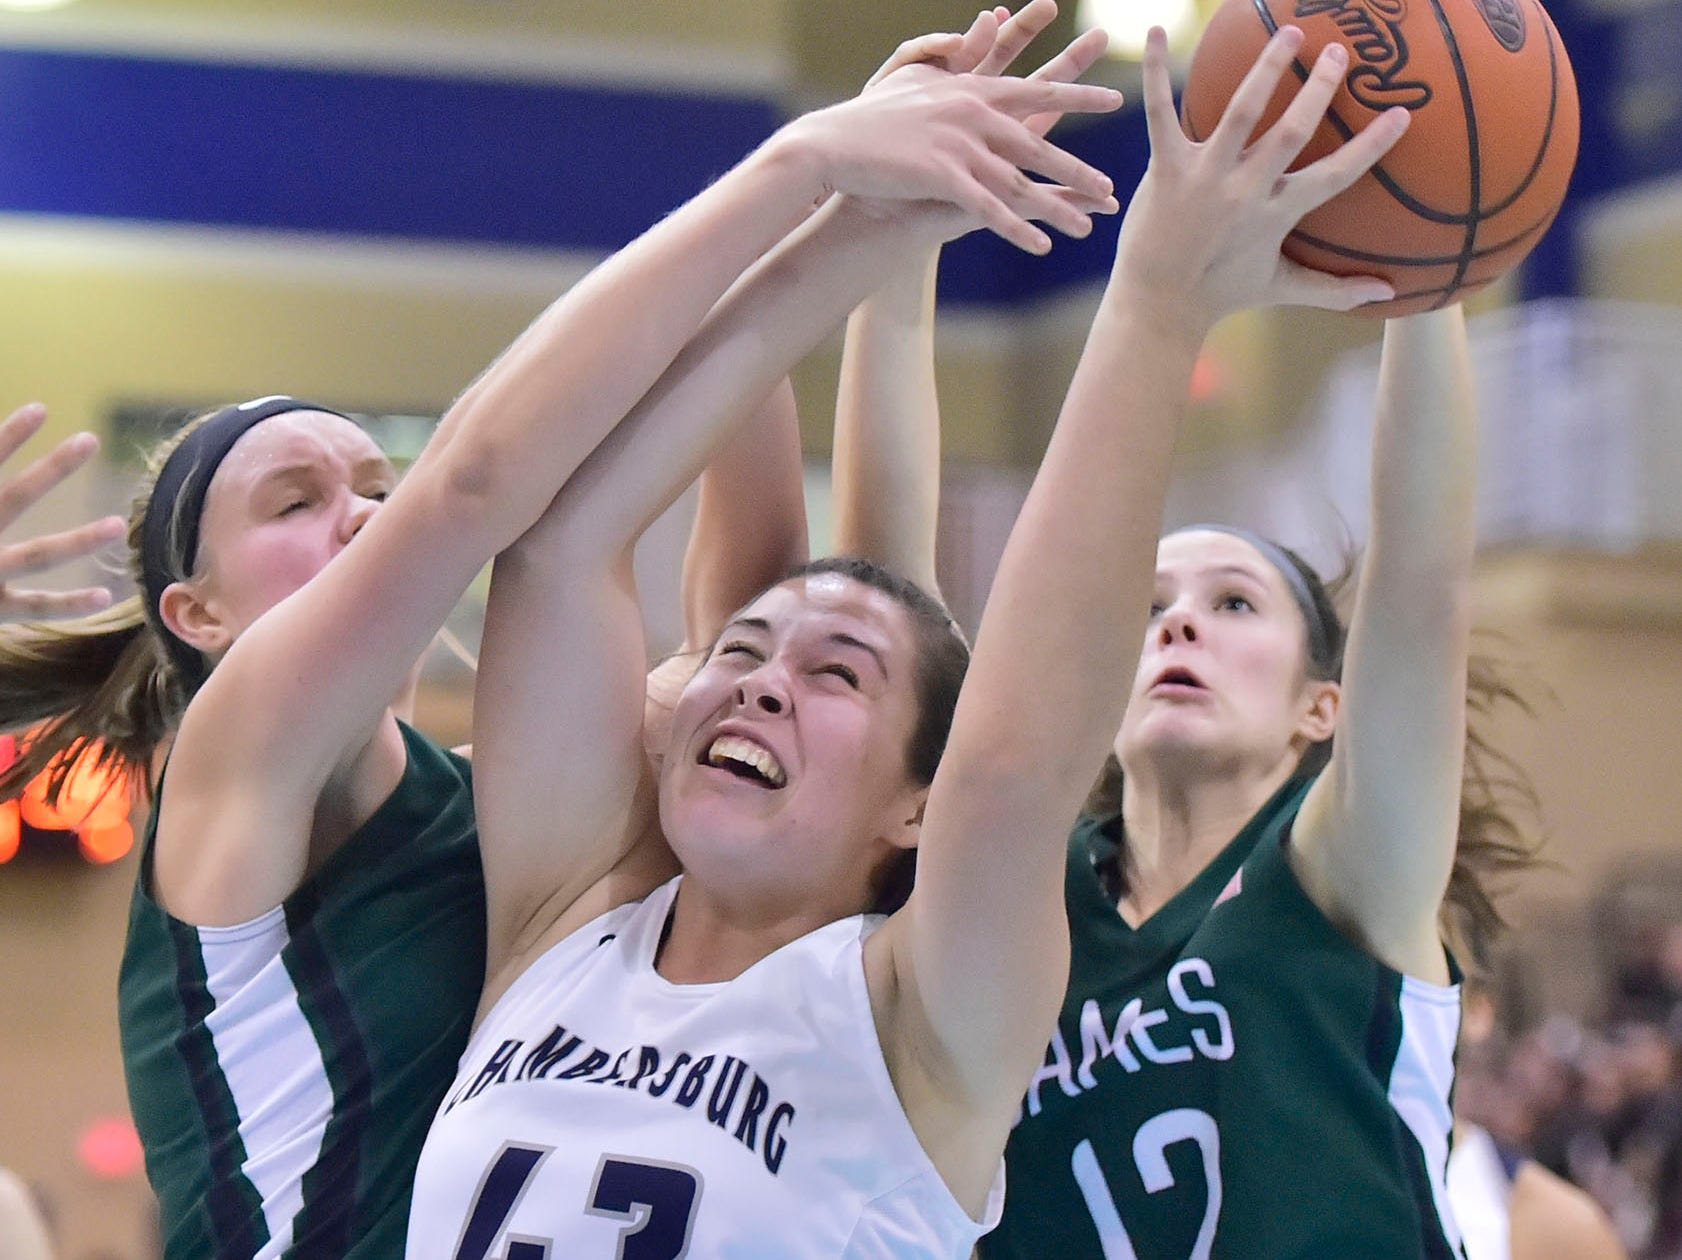 Chambersburg's Ashley Adams (43) is fouled by James Buchanan defenders. Chambersburg played James Buchanan girls during the Franklin County Tip-Off Tournament, Friday, Dec. 7, 2018.